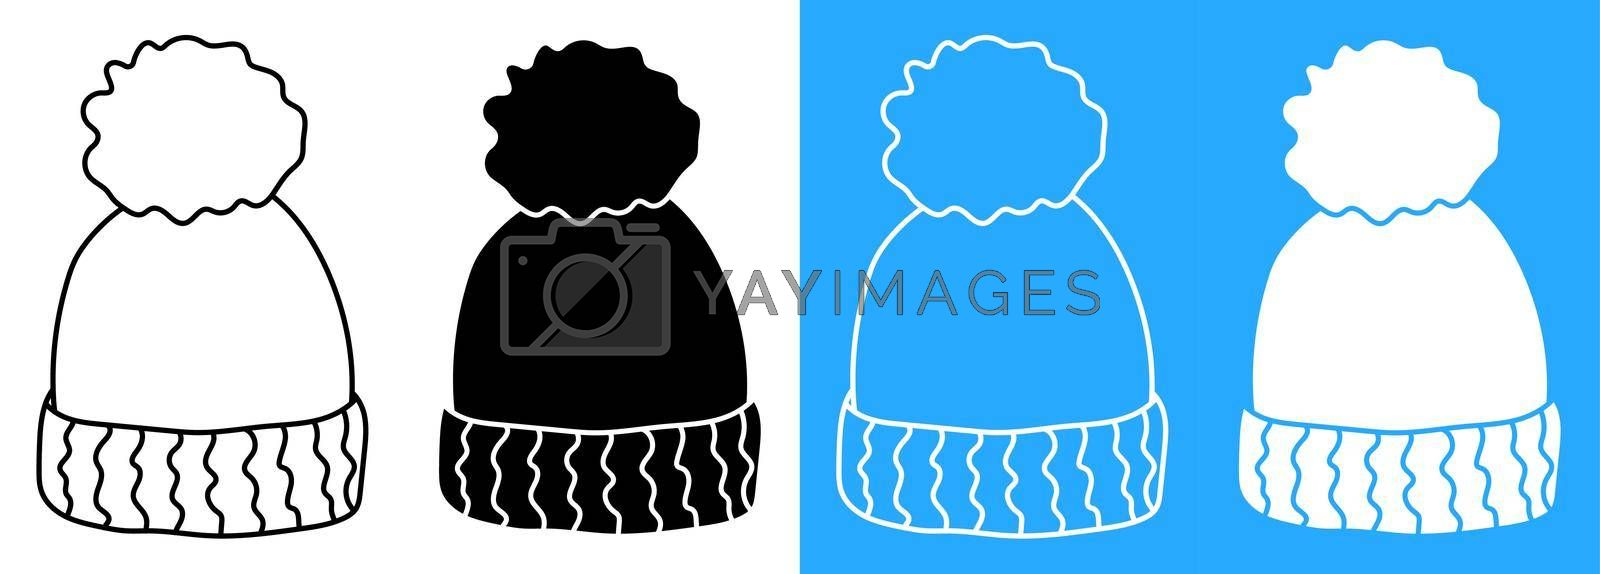 winter warm knitted wool hat. Winter clothing for cold weather. Caring for the health of children. Vector icon